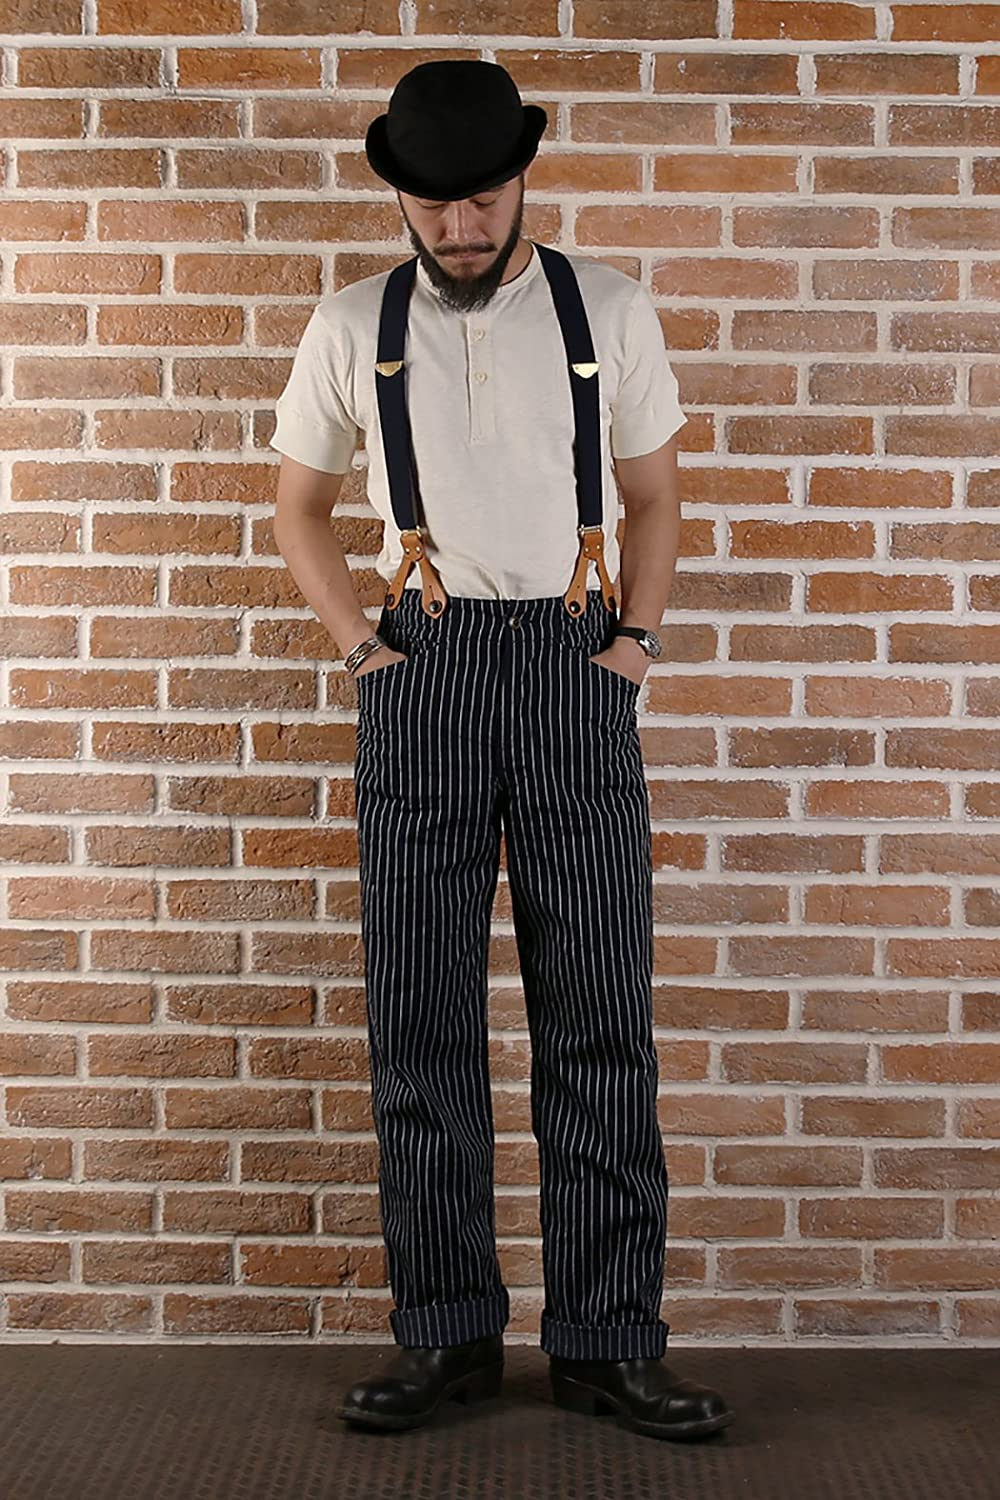 Edwardian Men's Fashion & Clothing Deep Blue Striped Loose Waist Strap Overalls Trousers PantsBronson Mens LOT924 $64.99 AT vintagedancer.com